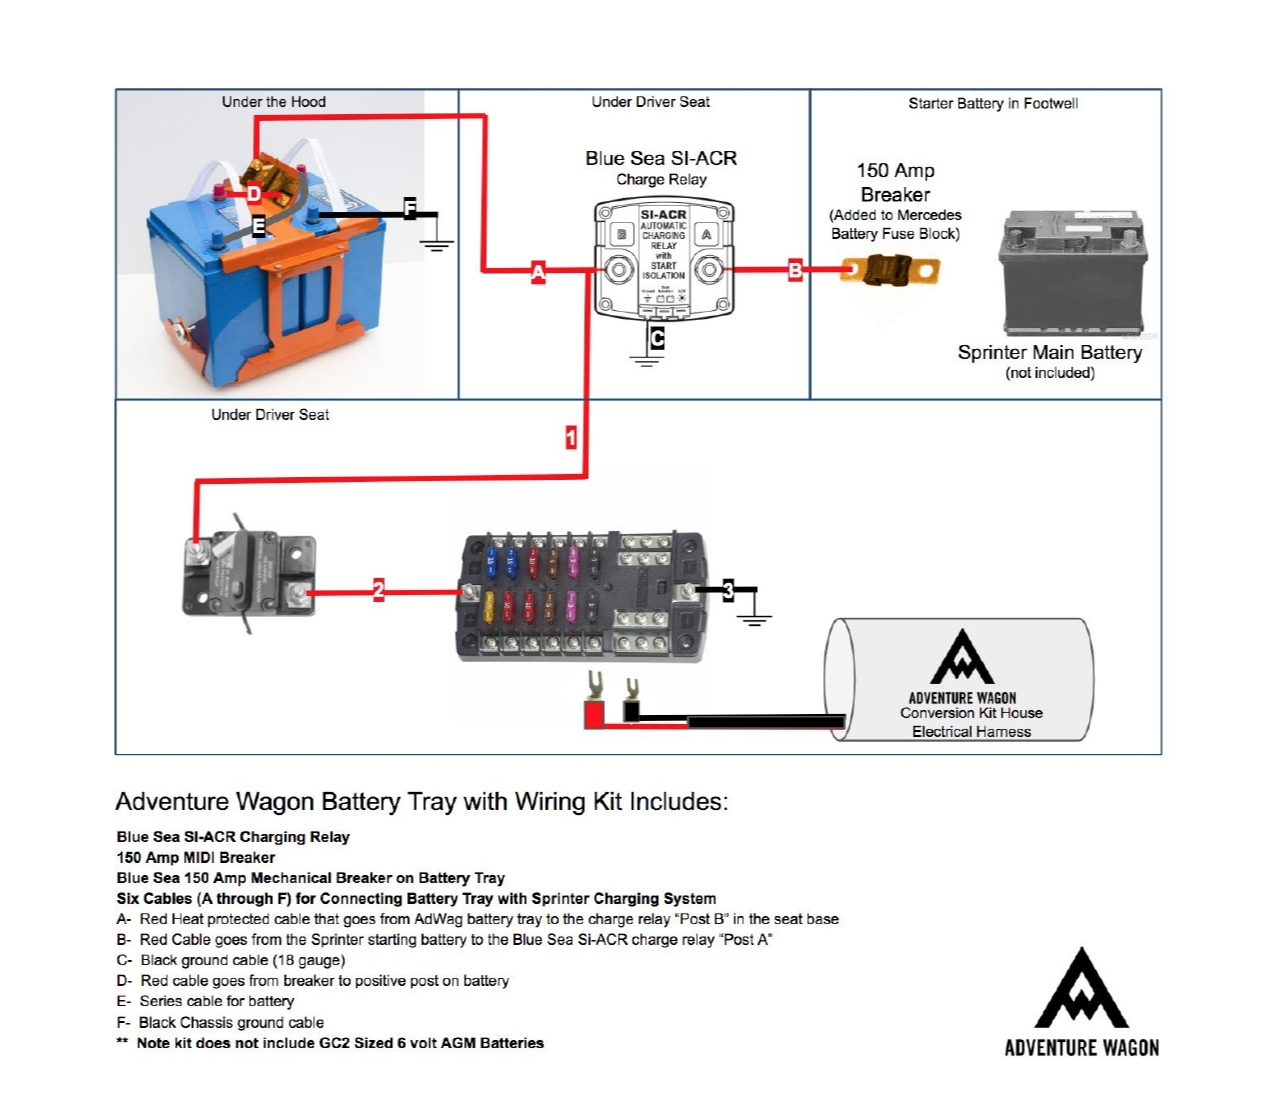 Battery Charger Circuit Diagram Wiring Harness Wiring Diagram